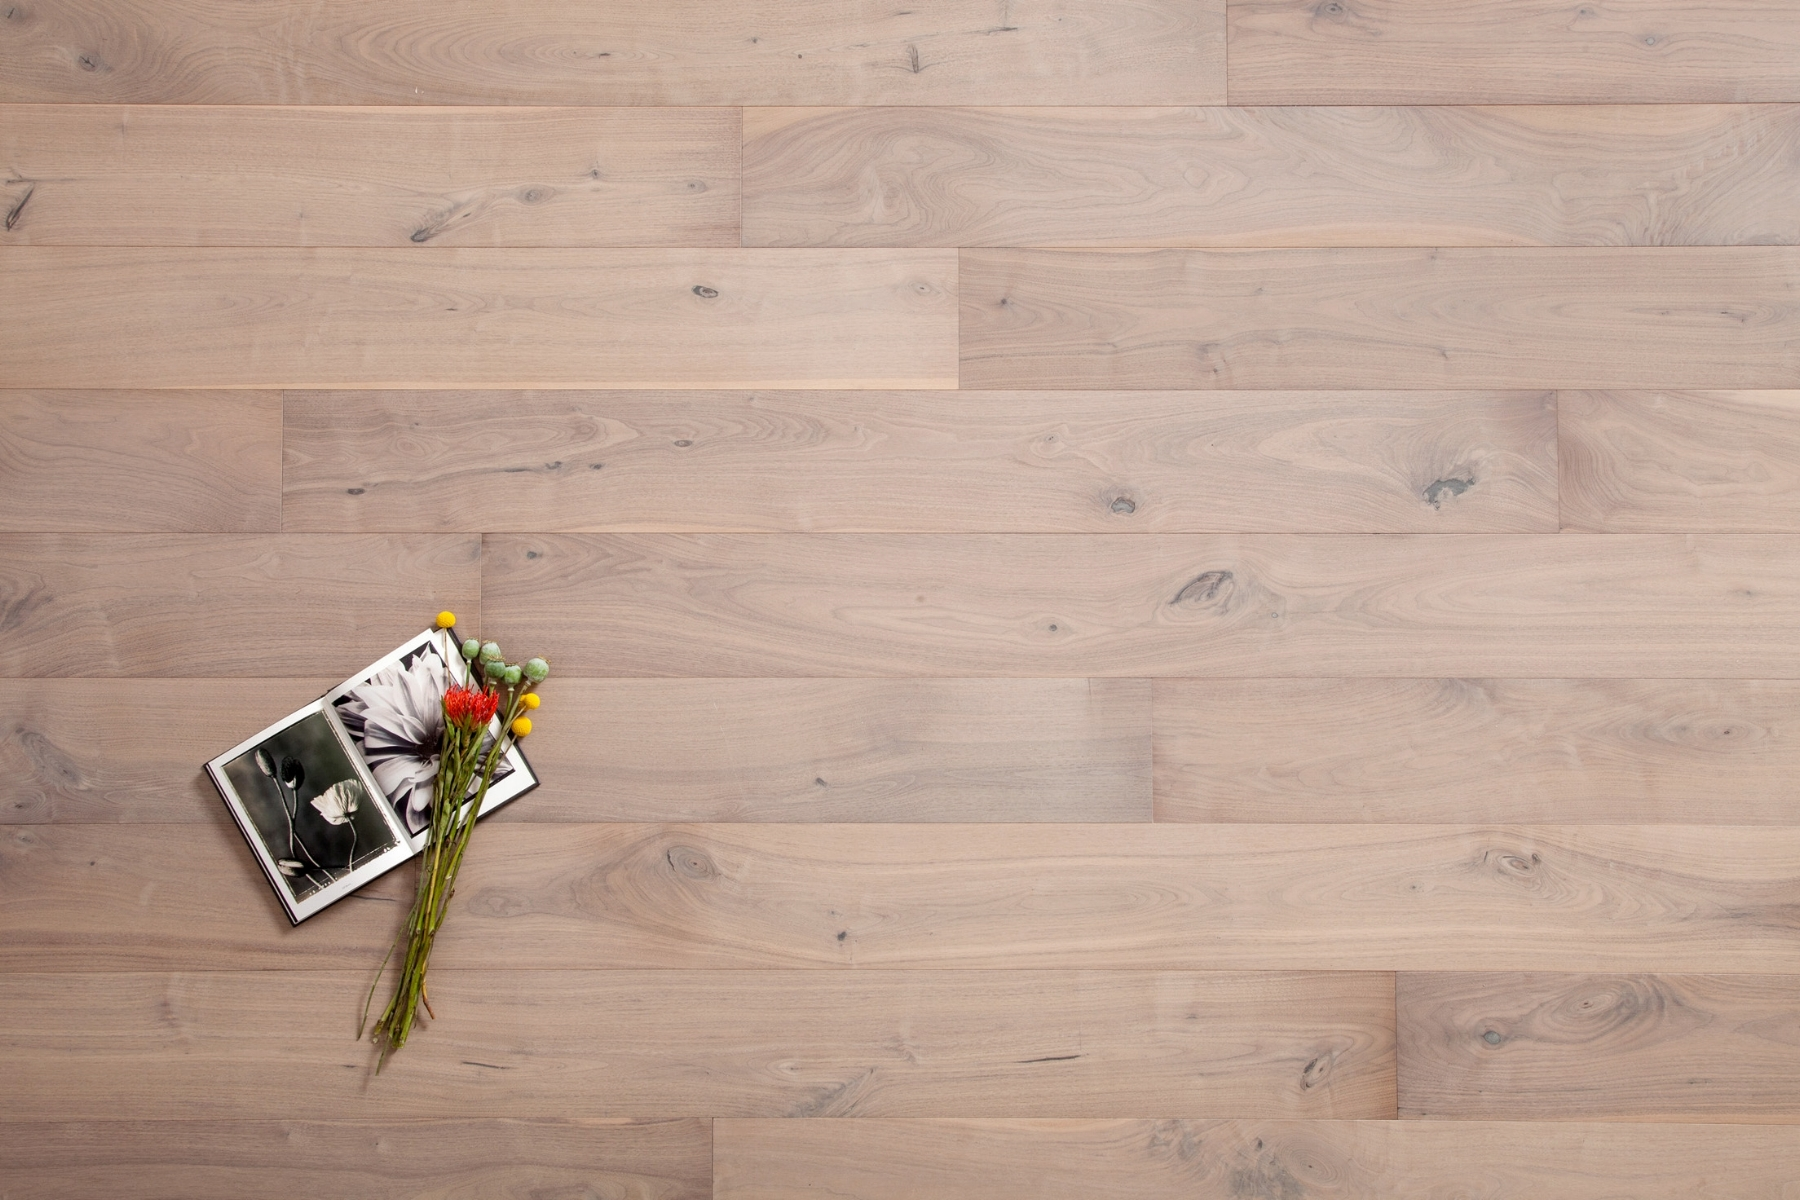 M A D E R A Simply Wood Floors Designed By Nature